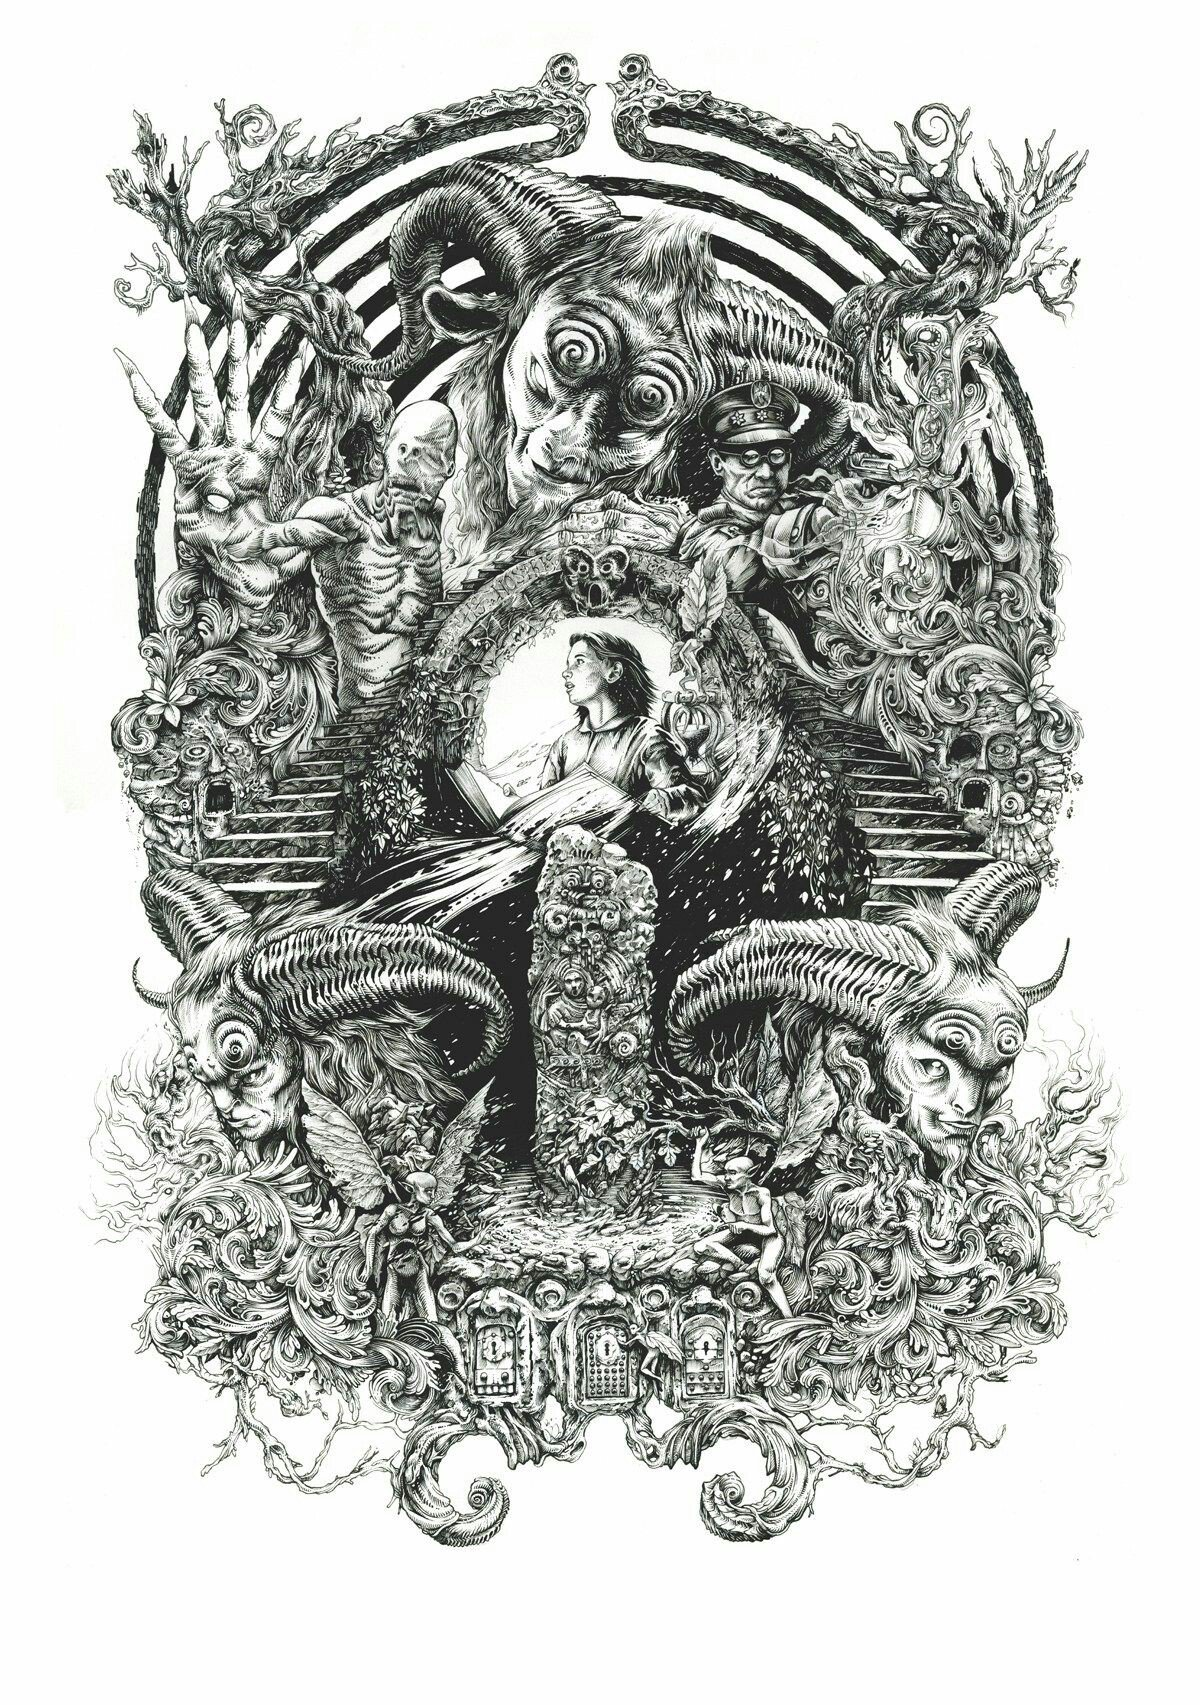 I love it !!! 😍 Pan's Labyrinth directed by @RealGDT  (Artist: DZO) https://t.co/xfraoVxvXY